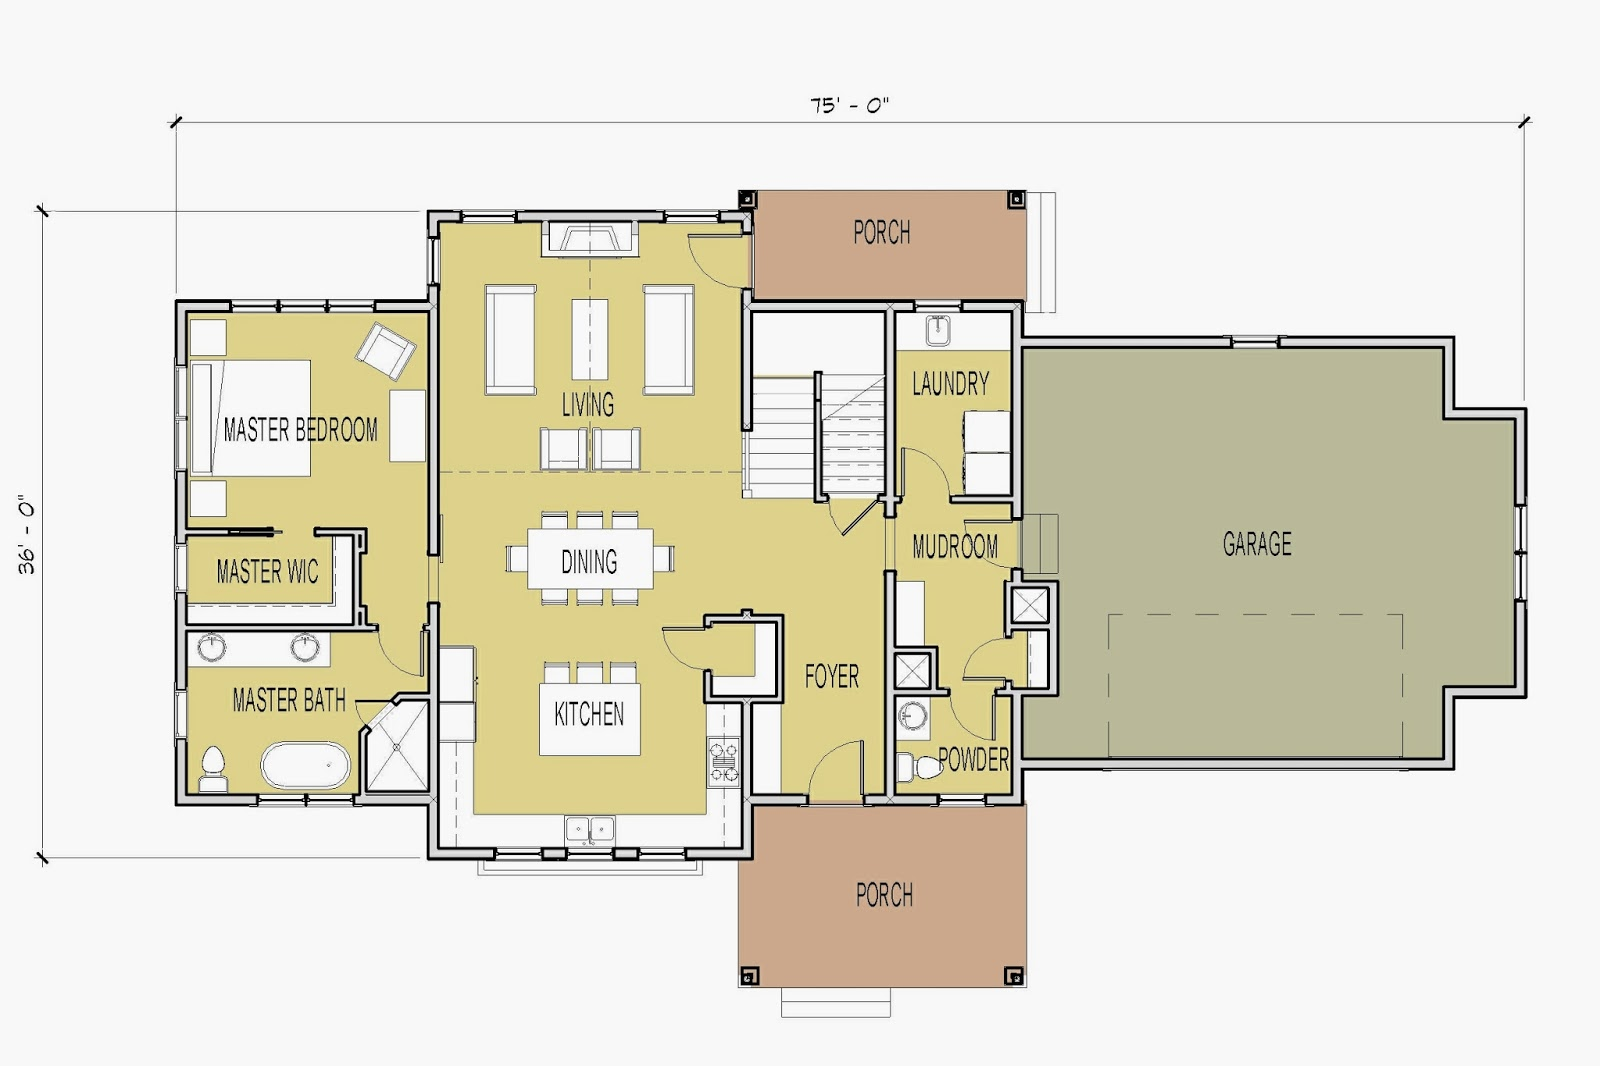 Simply Elegant Home Designs Blog: New House Plan with Main ...